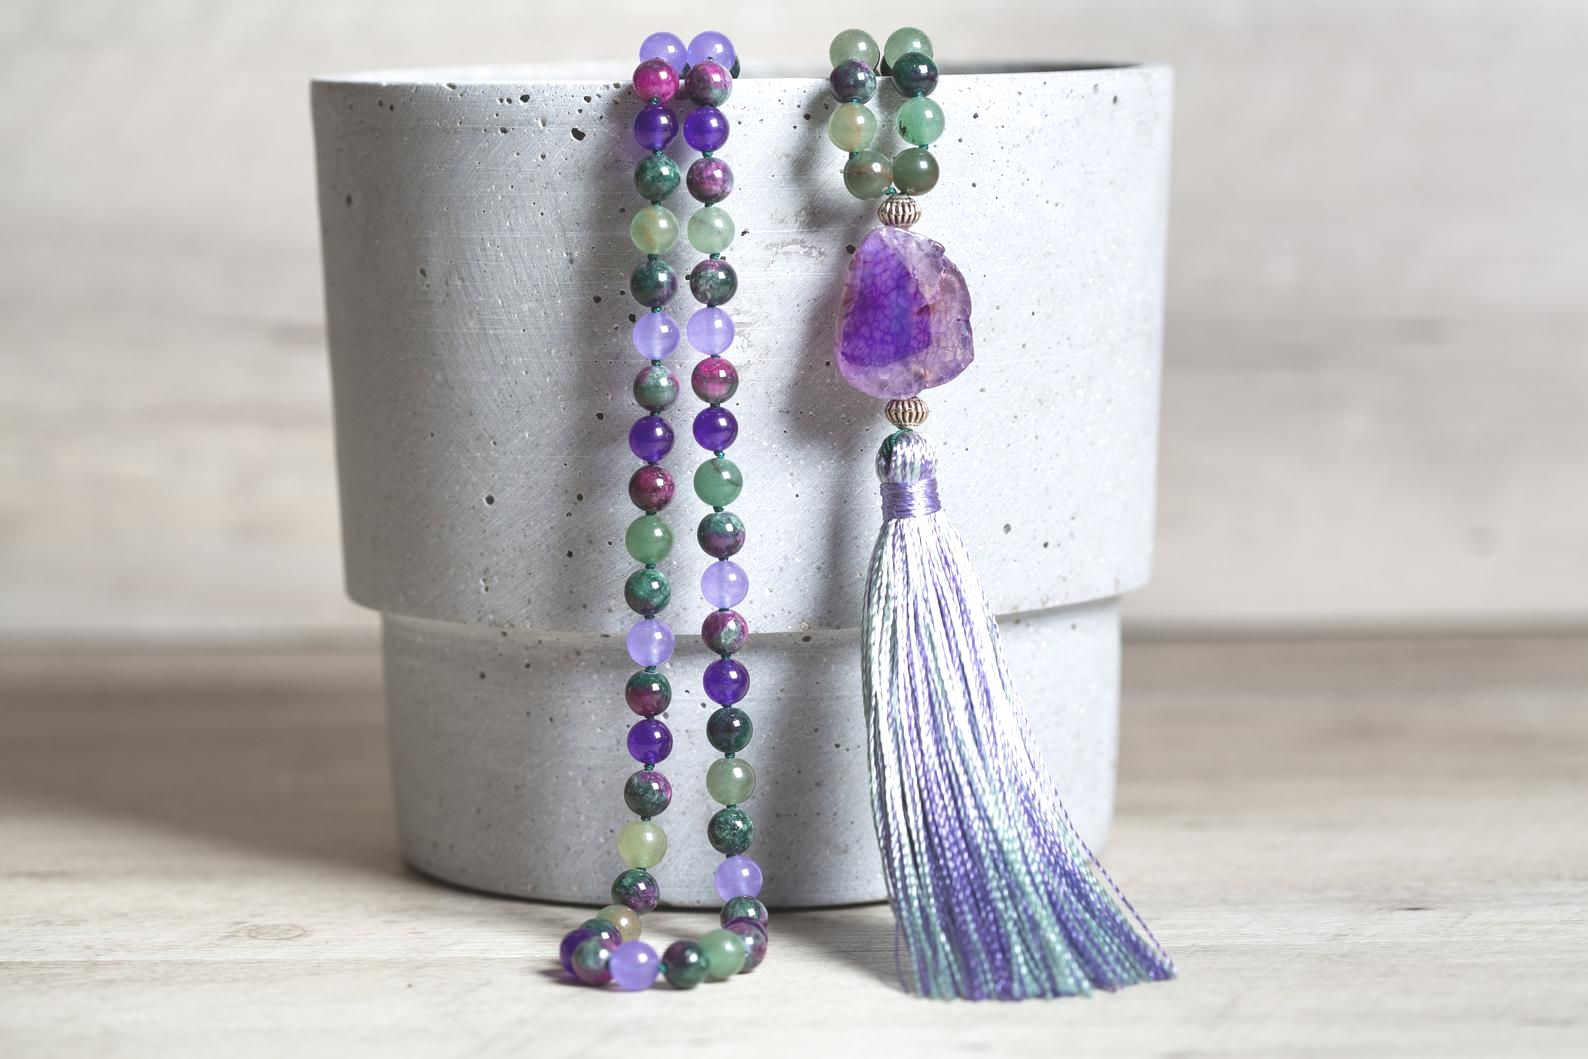 Green Aventurine n' Purple Jade Mala Necklace, Mauve Geode Agate Guru Bead, Rainbow Handmade Rayon Tassel, Boho Jewelry Gift for Women